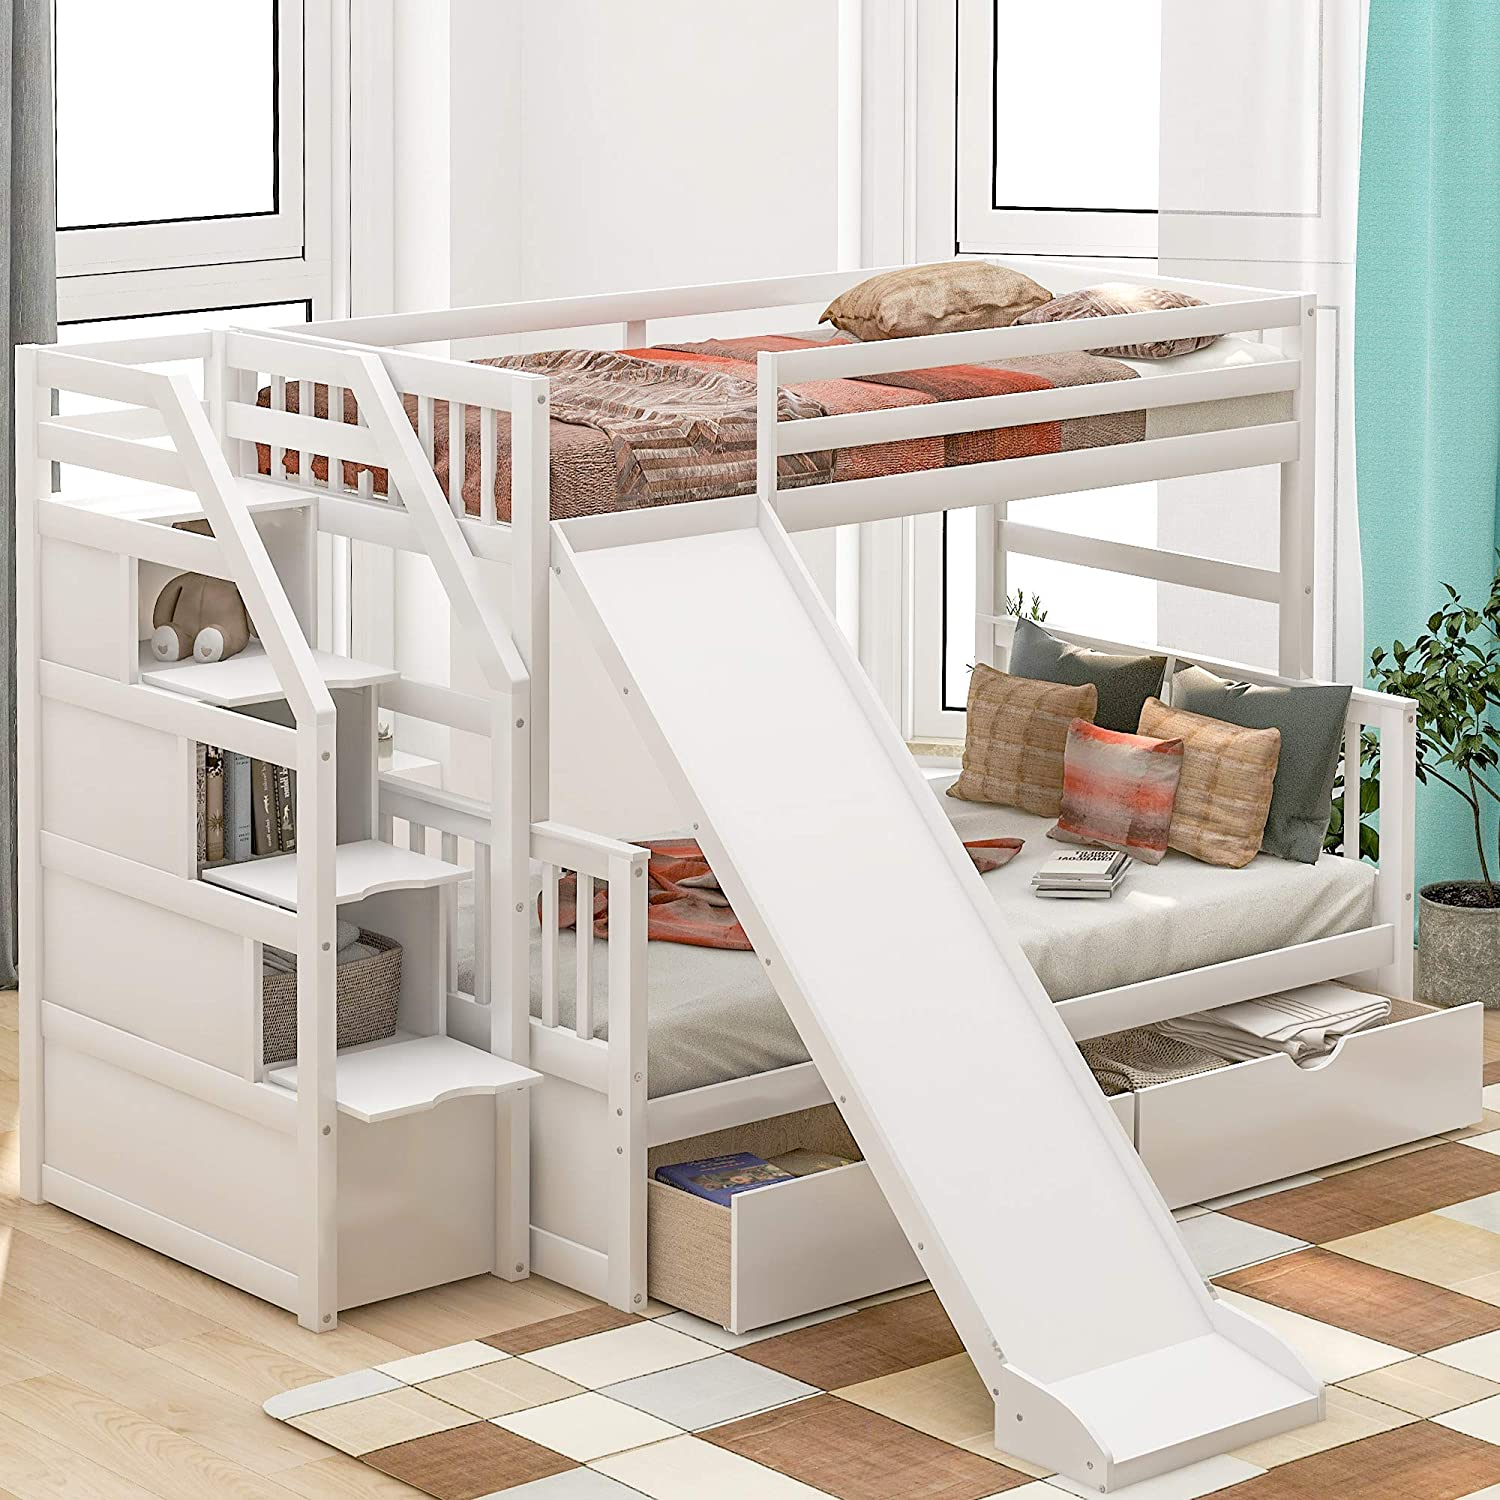 Amazon Com Twin Over Full Bunk Bed Frame For Kids Wood Twin Over Full Bunk Bed With Slide Stairs And 2 Storage Drawers White Kitchen Dining